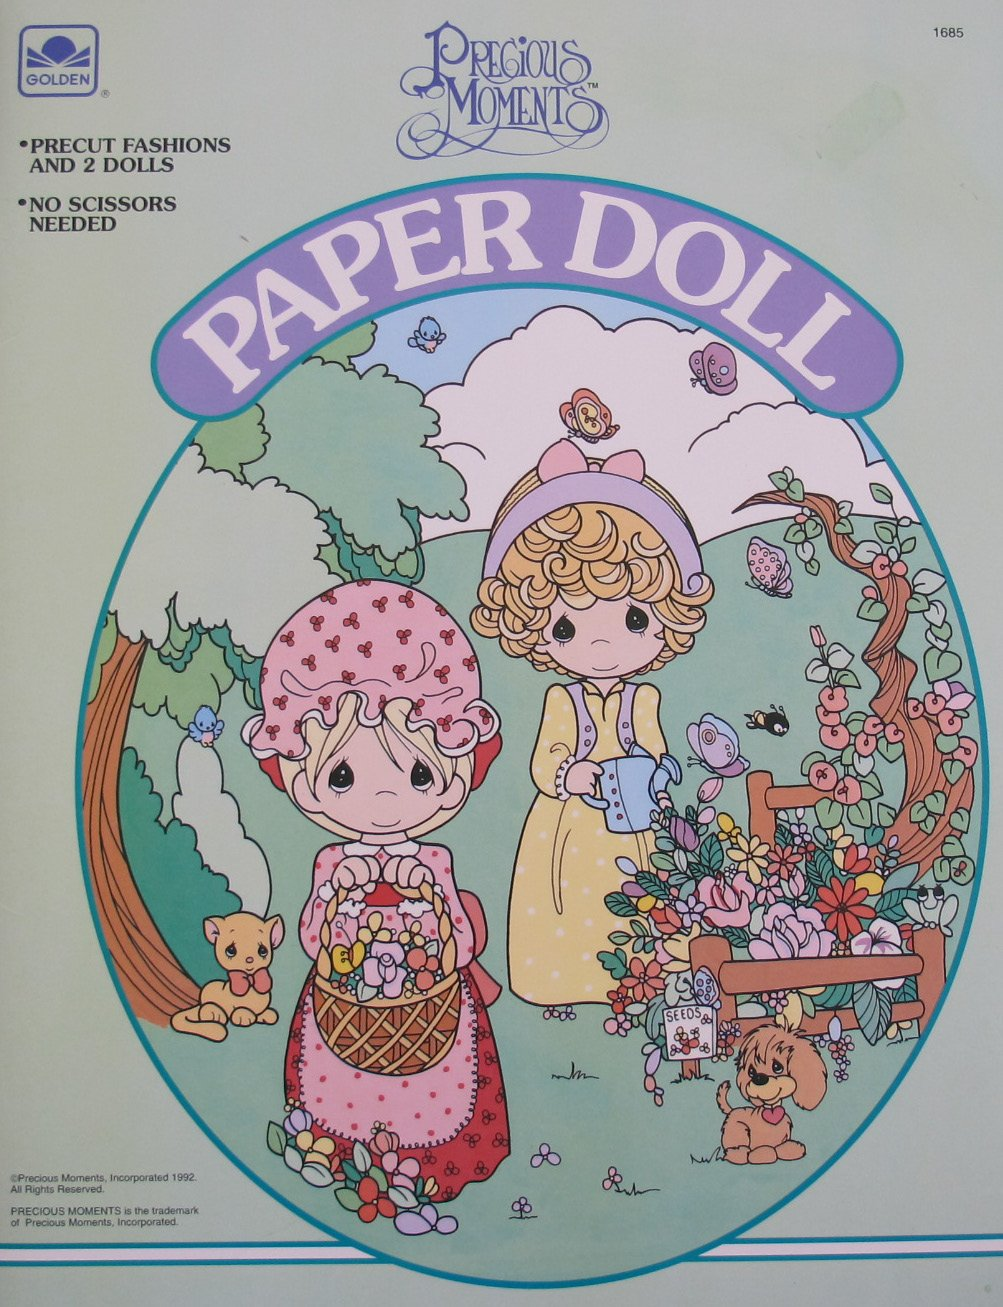 Golden PRECIOUS MOMENTS PAPER DOLL Book UNCUT w 2 Dolls, 5 Play Pieces & MORE! (1992) by Spider-Man (Image #1)